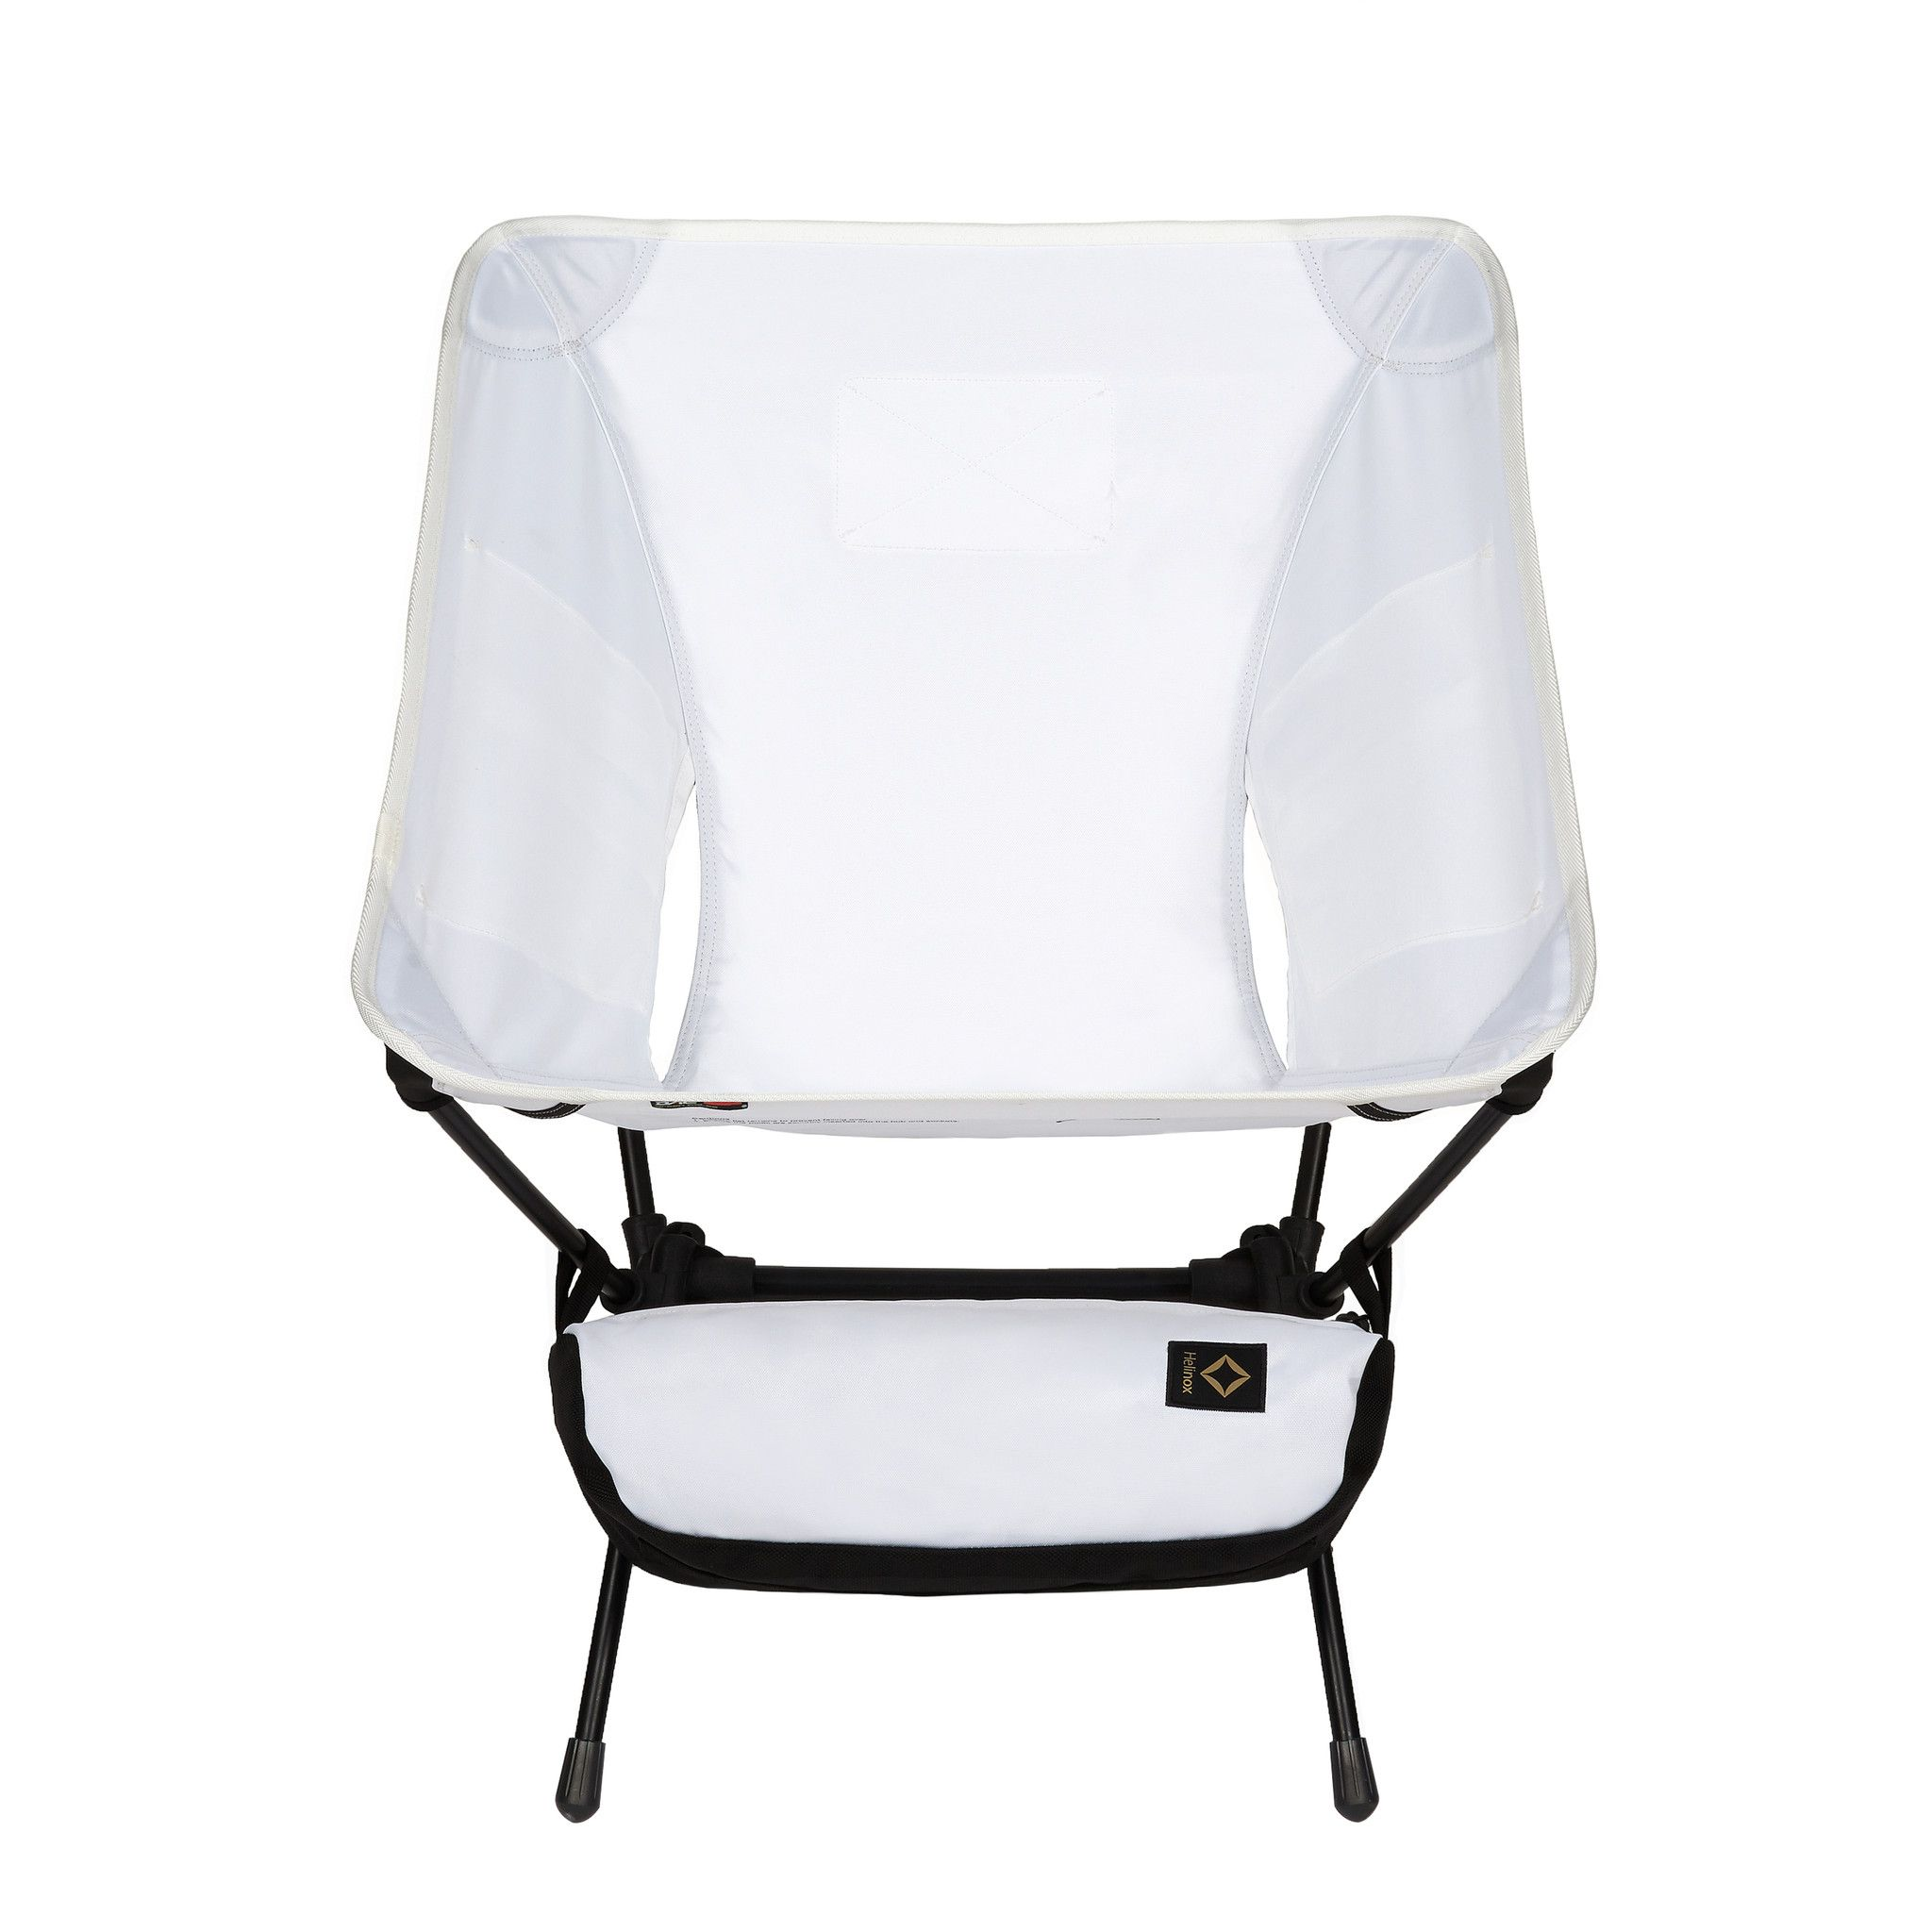 Fantastic Helinox Chair Tactical Snow White Gear List Camping Short Links Chair Design For Home Short Linksinfo